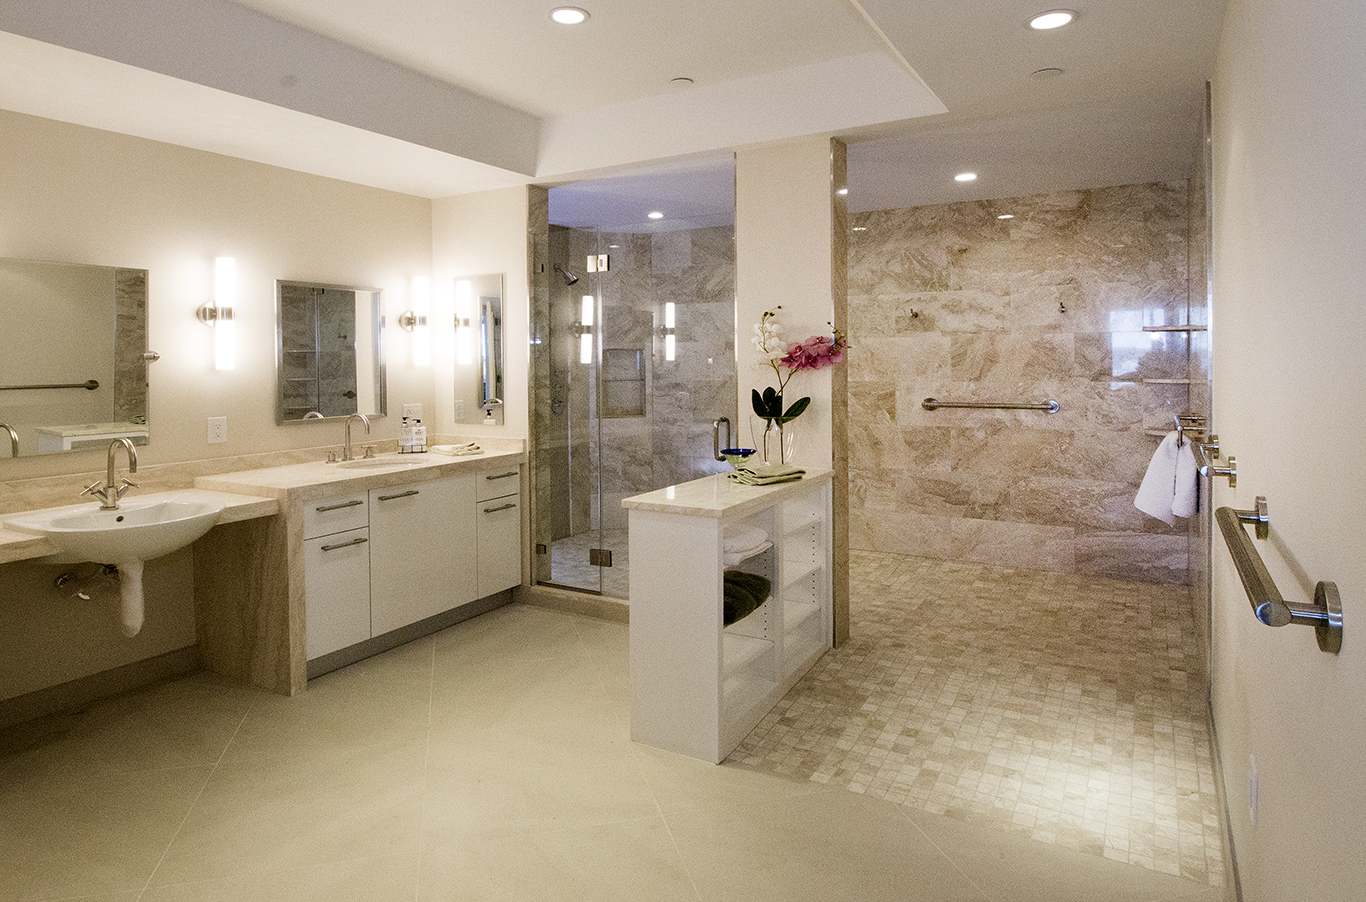 Bathroom remodeling northern virginia home fronts news Bathroom remodeling arlington va